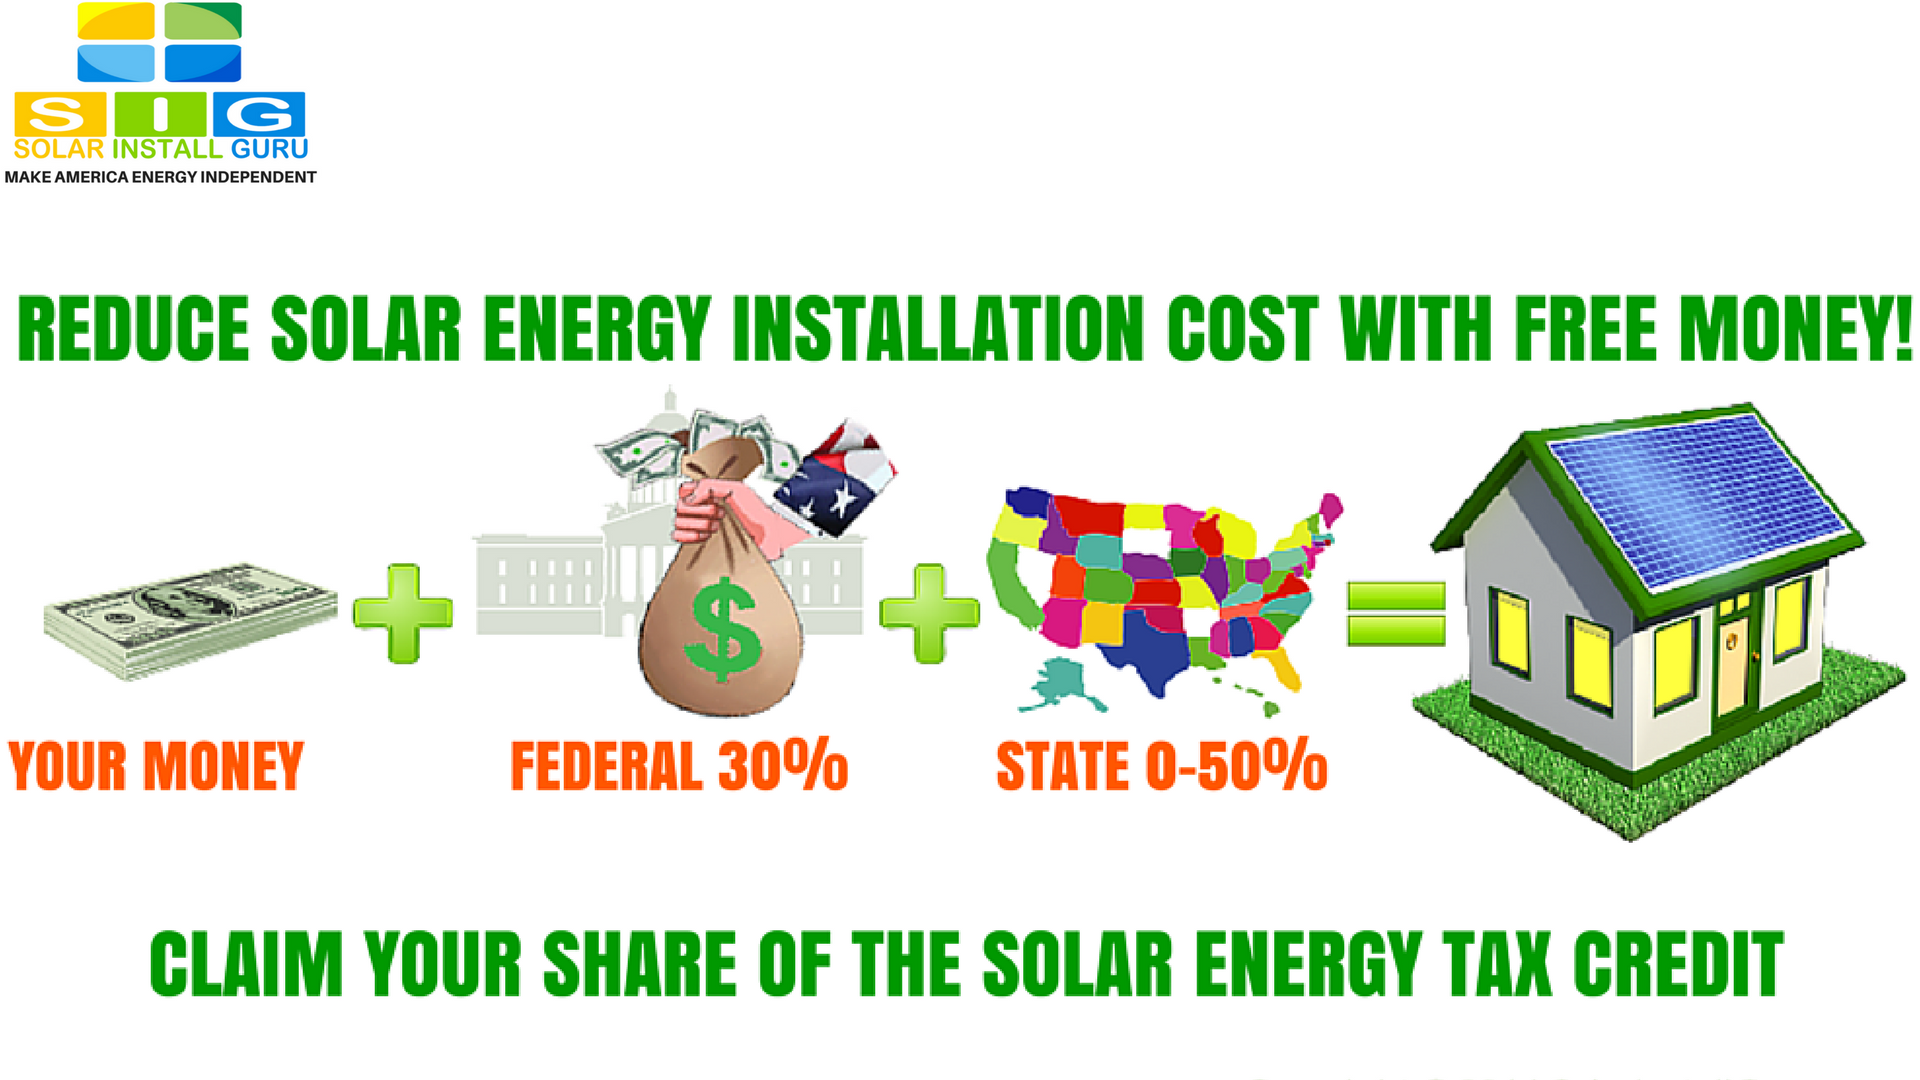 solar rebates and federal solar tax credit can slash cost by 80 percent